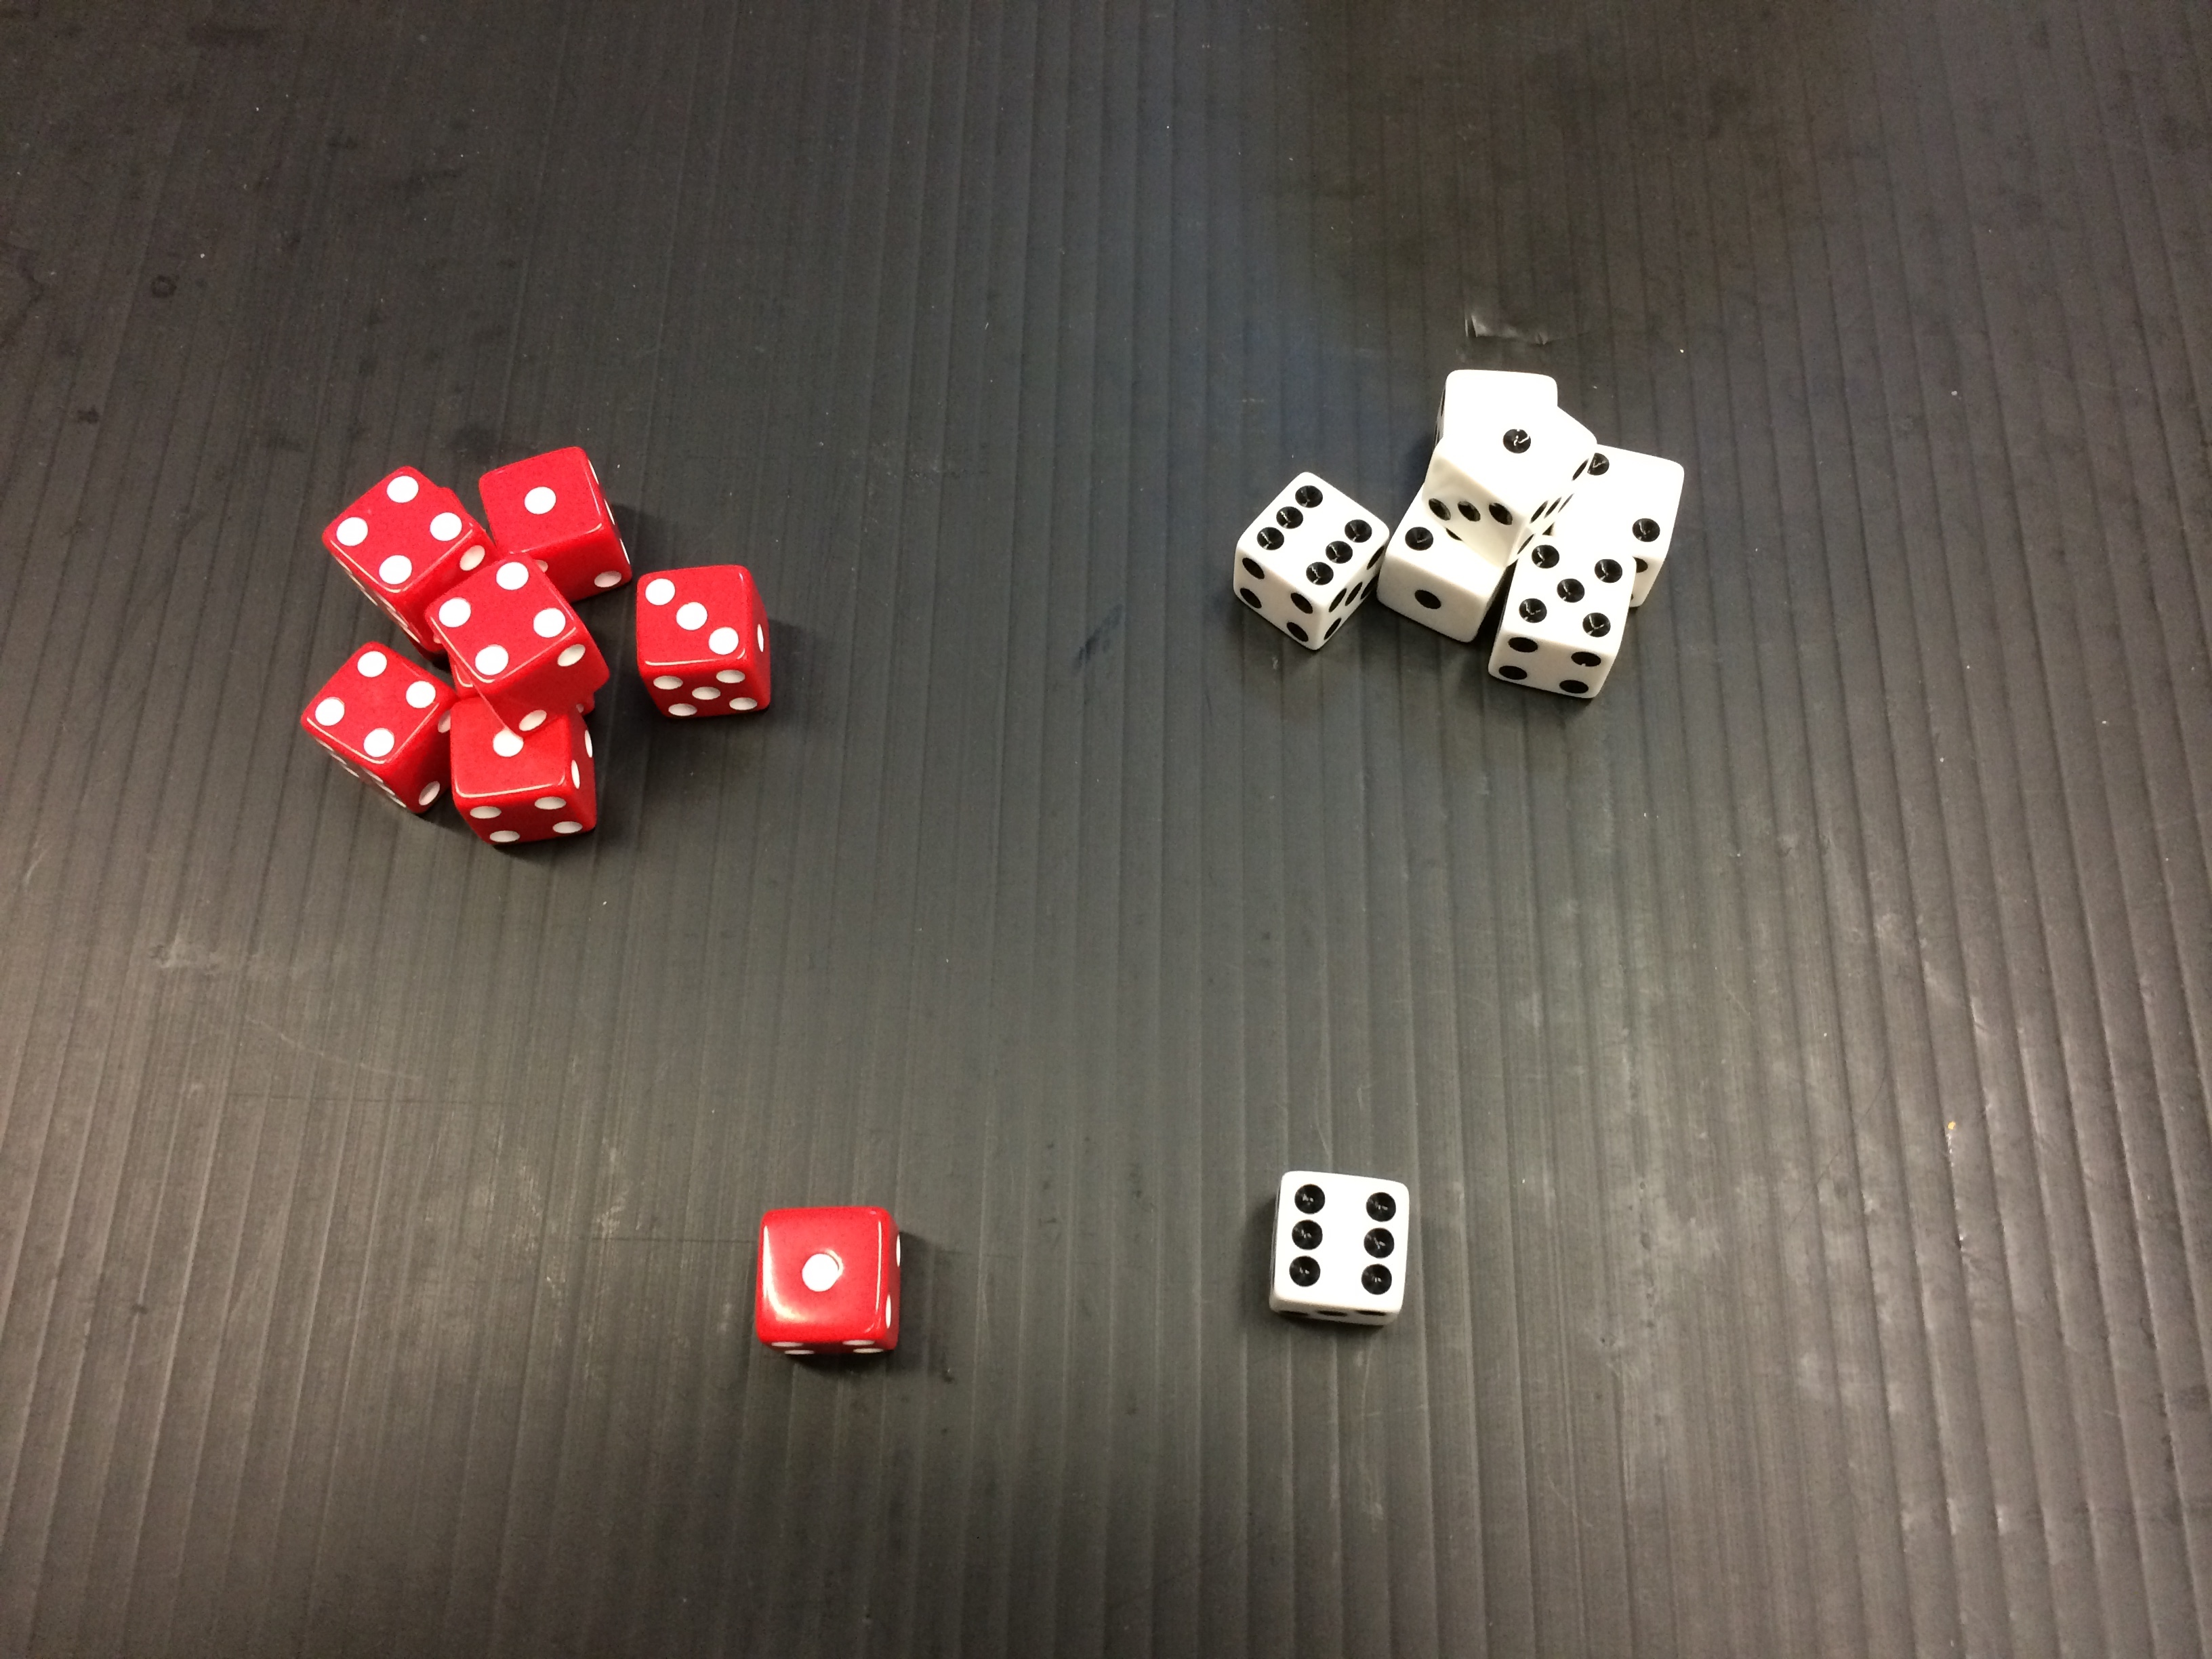 Dice used for entropy activity